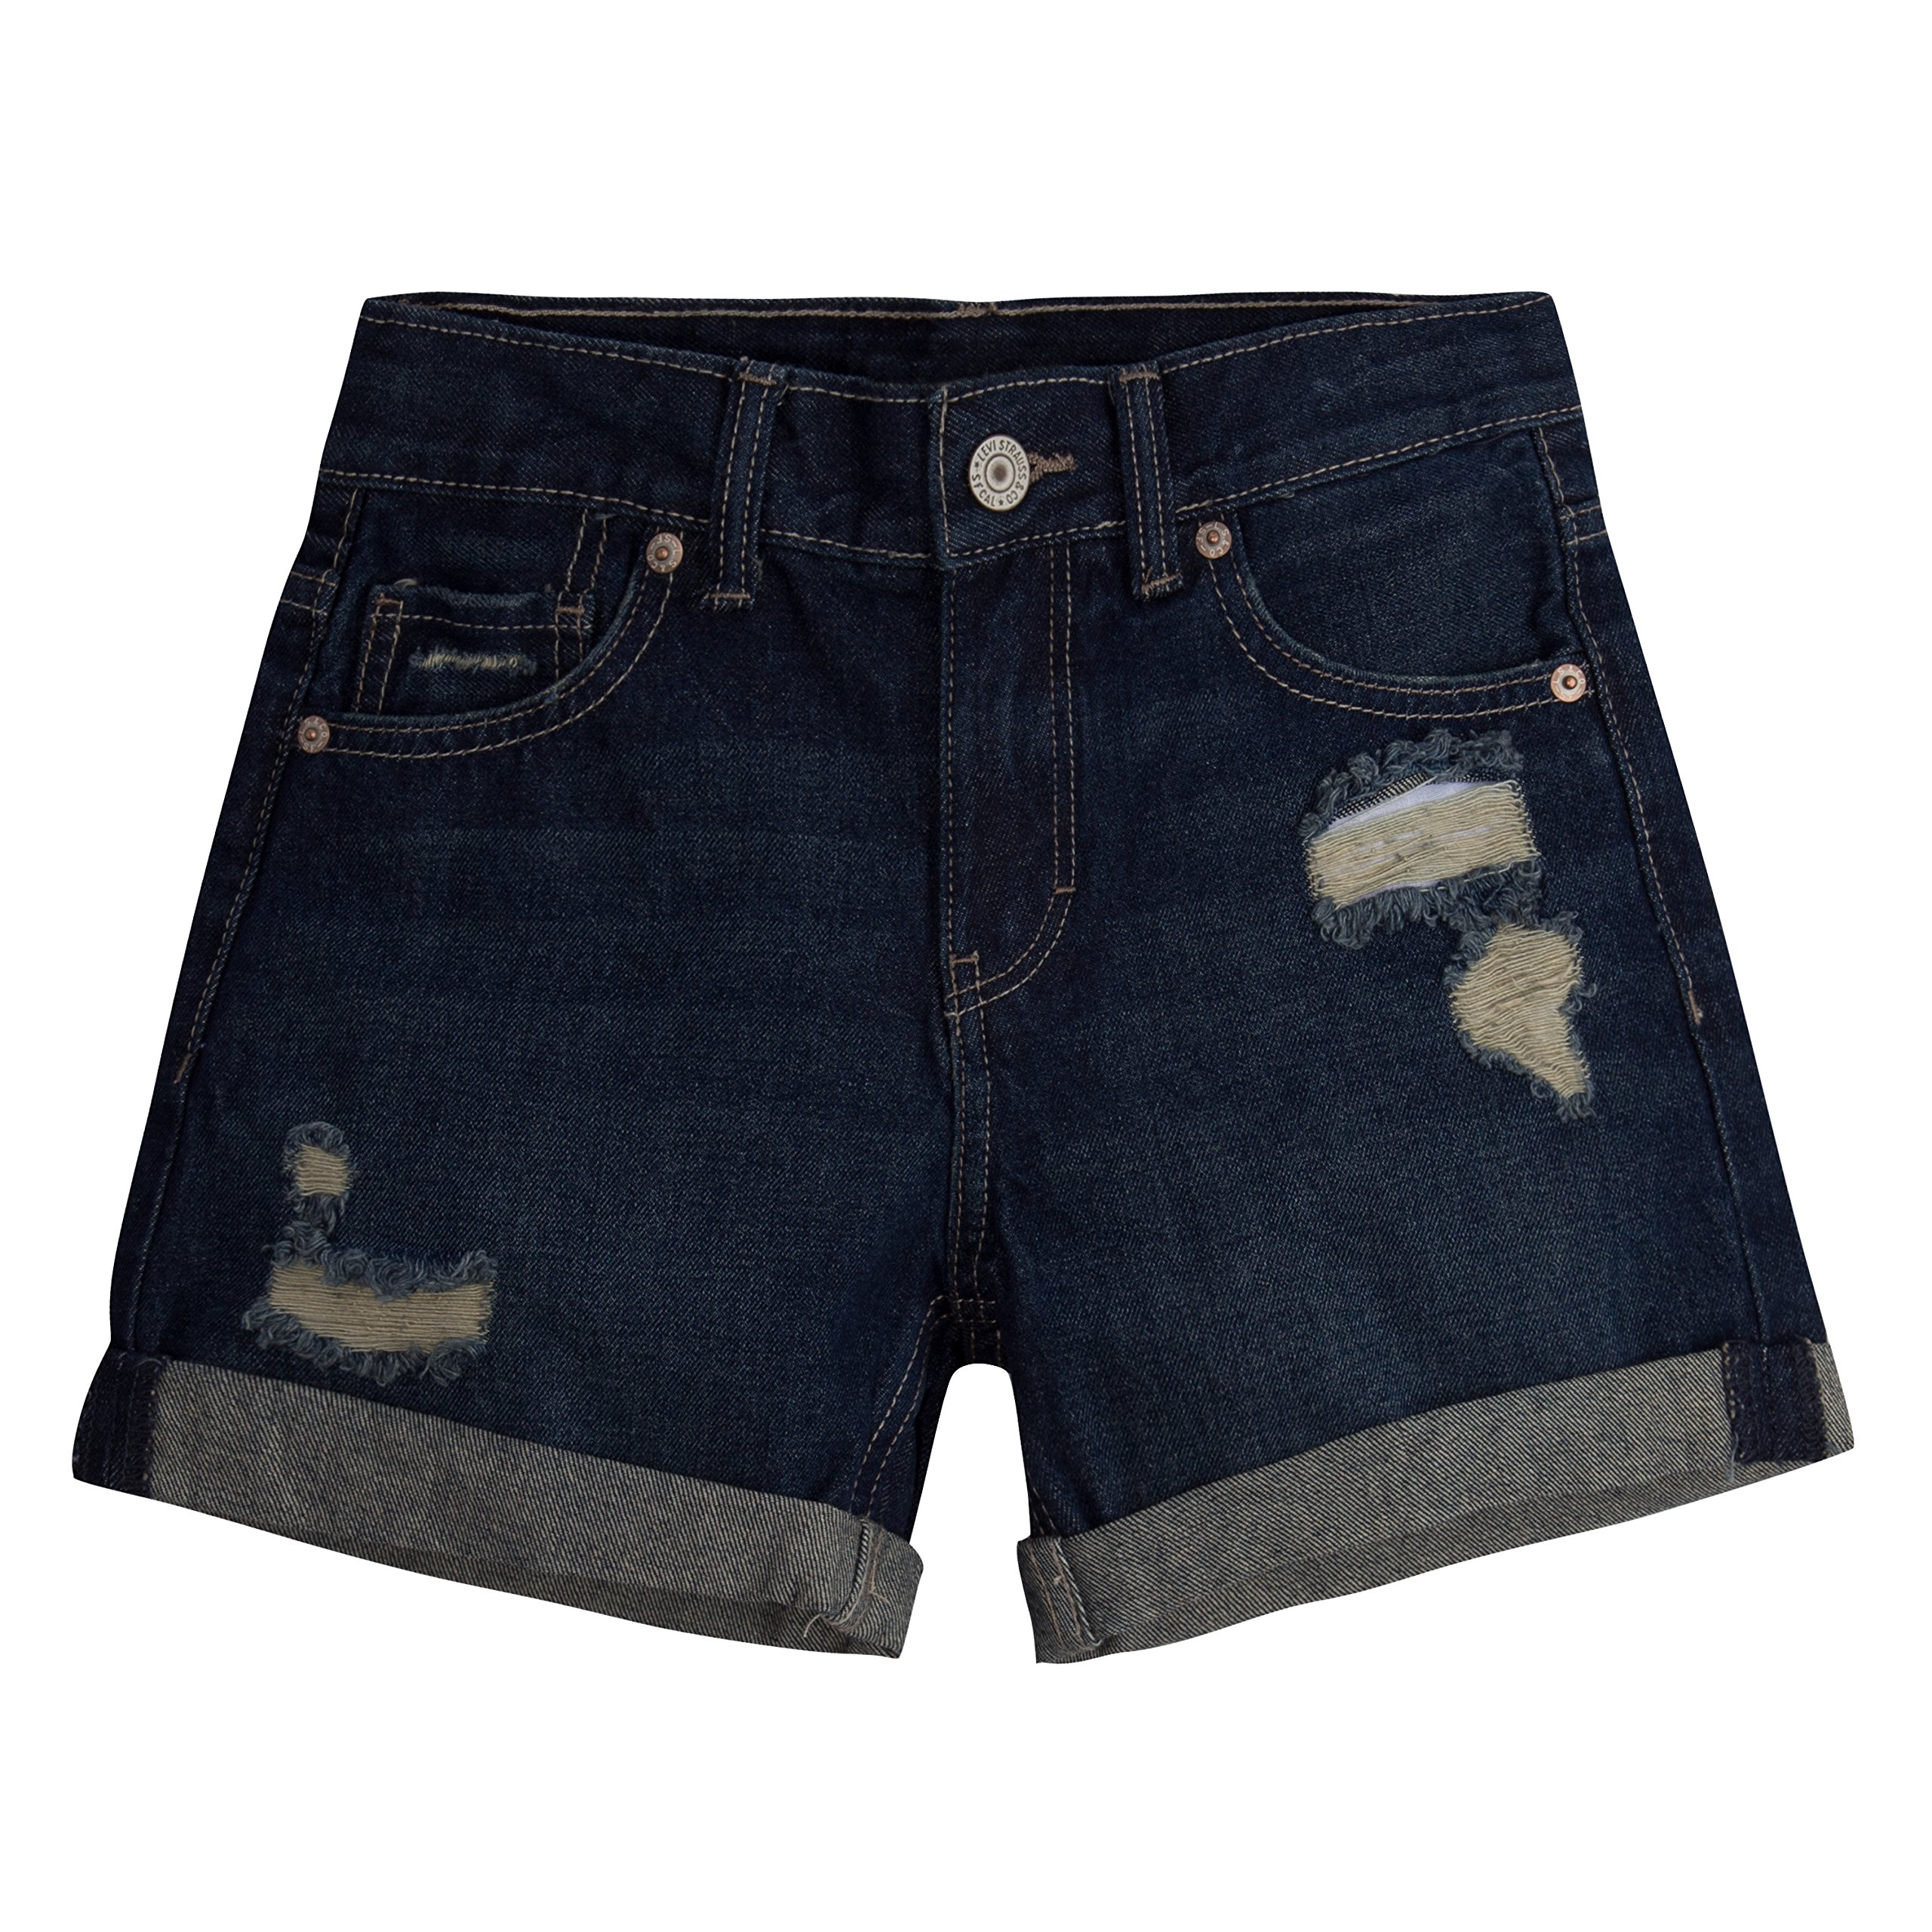 Levi's Girls' Big Girlfriend Fit Shorty Shorts, Ocean Side, 14